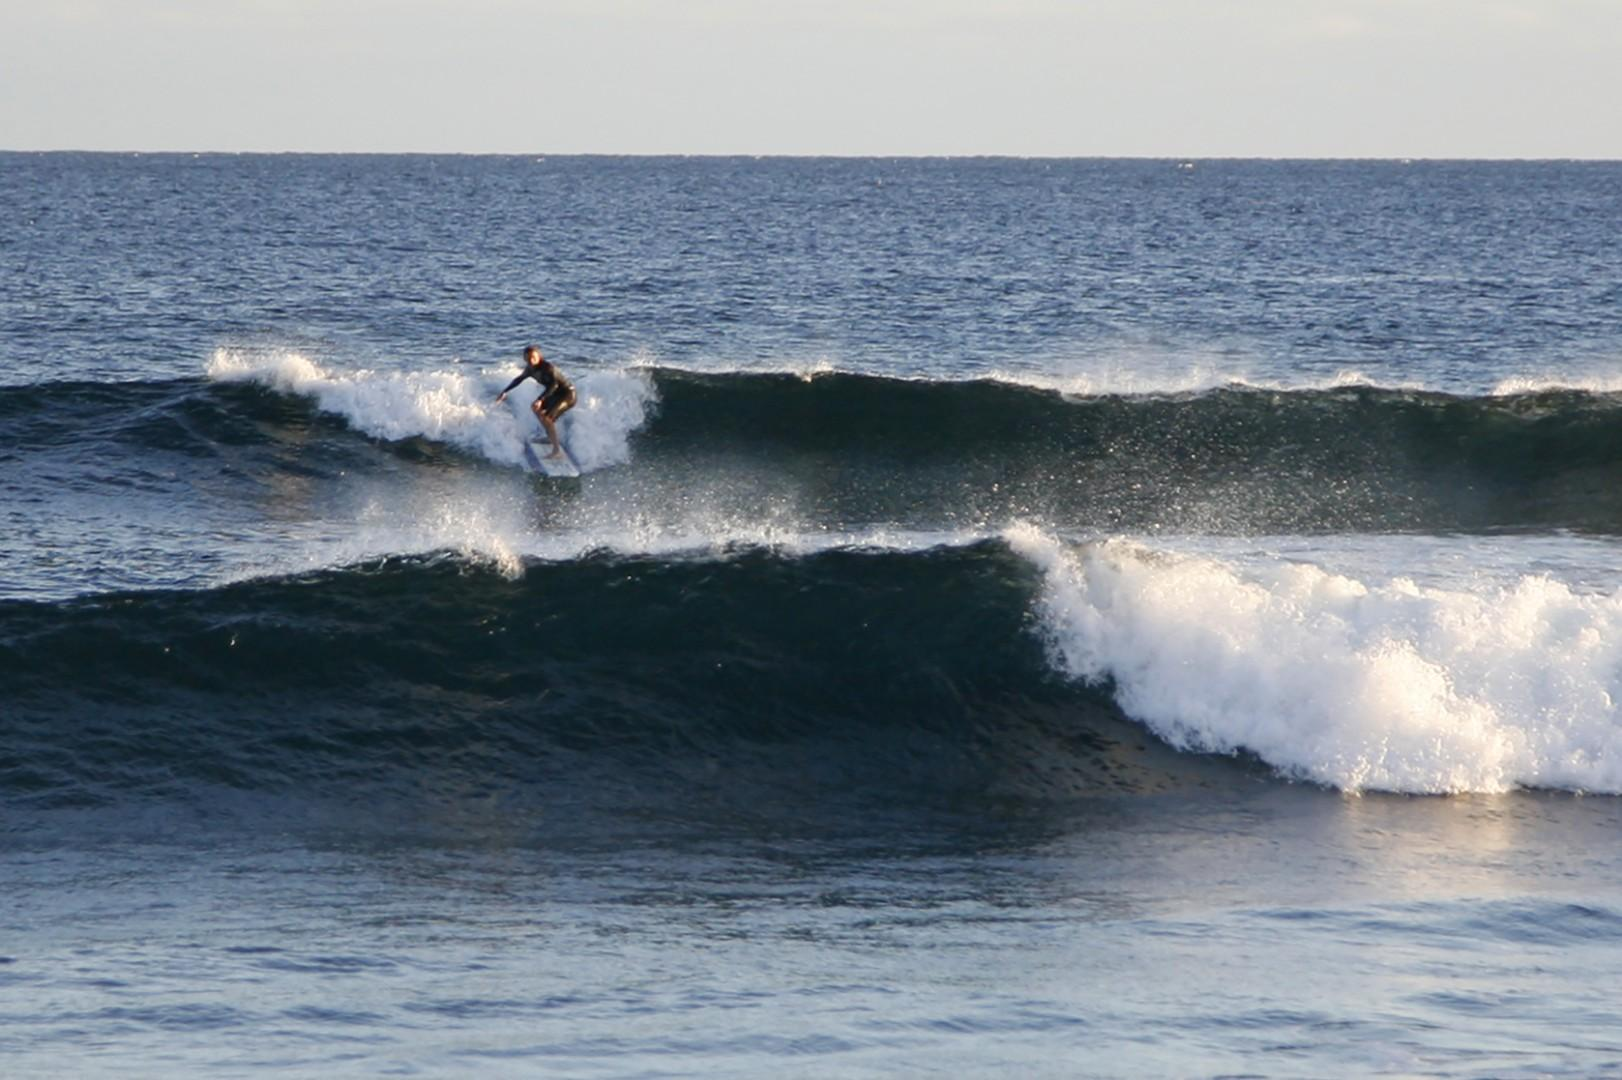 World class surfing within 3 miles